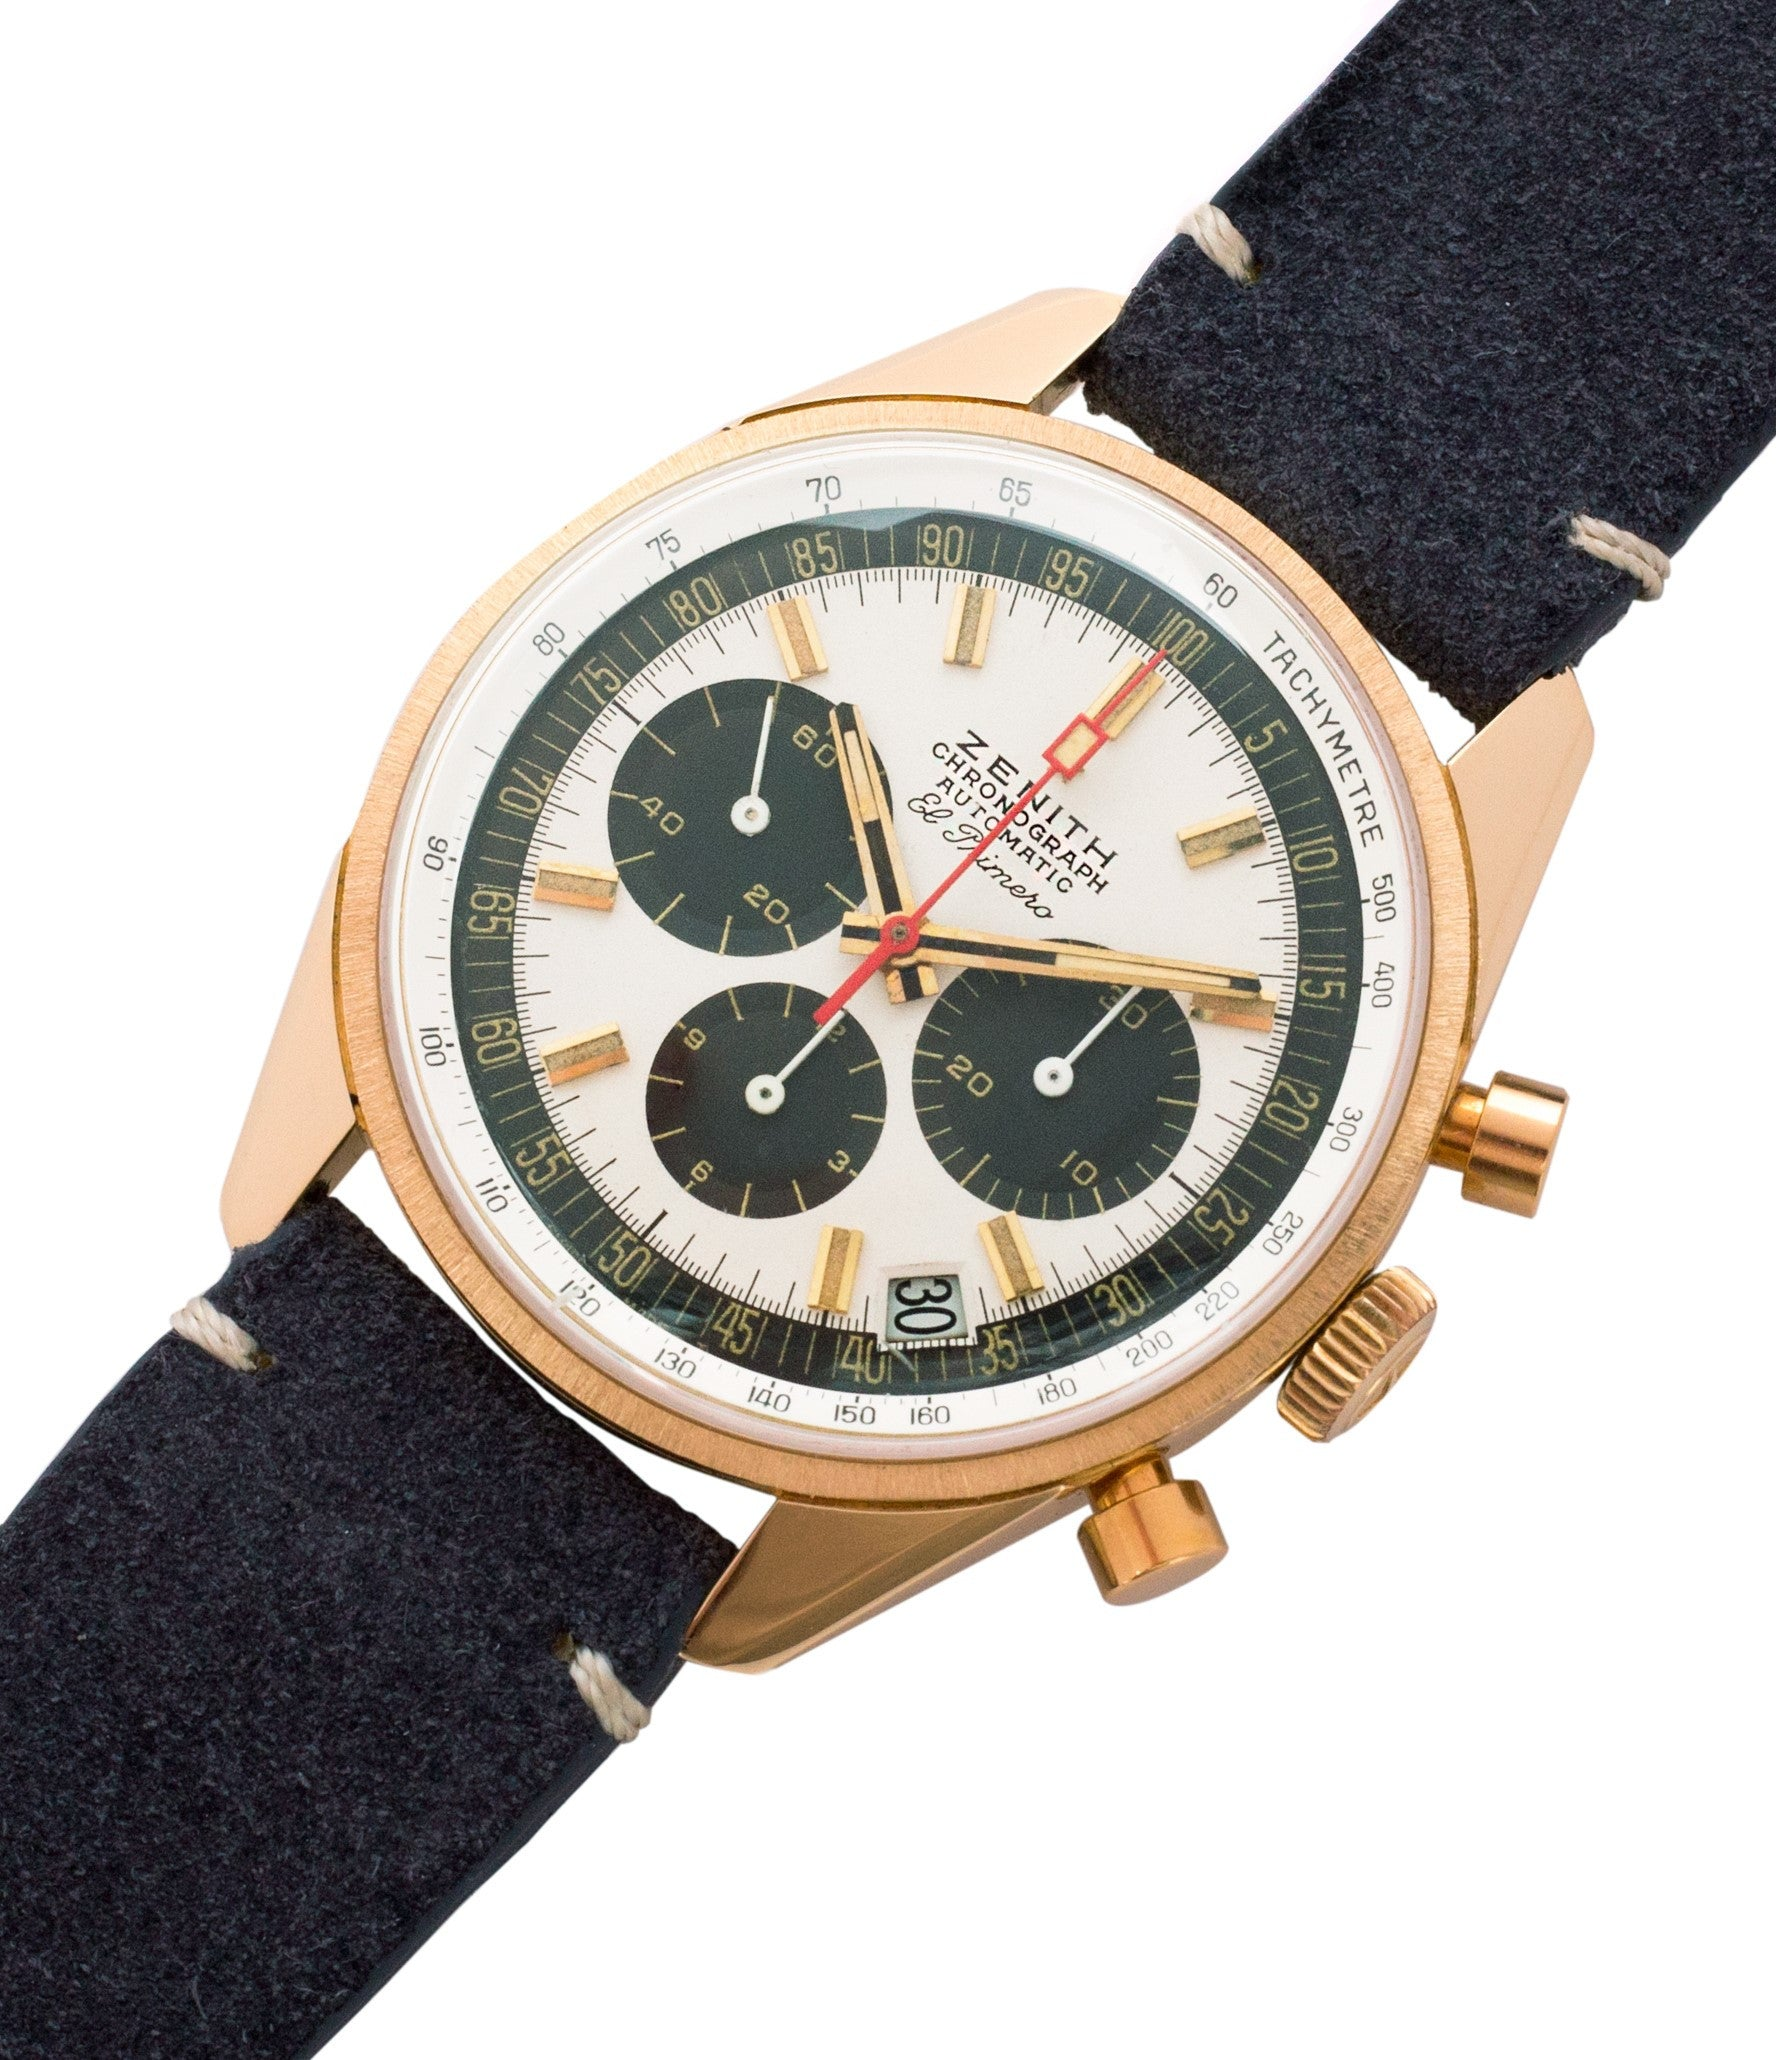 buy yellow gold Zenith El Primero G381 rare vintage chronograph date watch for sale online at A Collected Man London vintage watch specialist